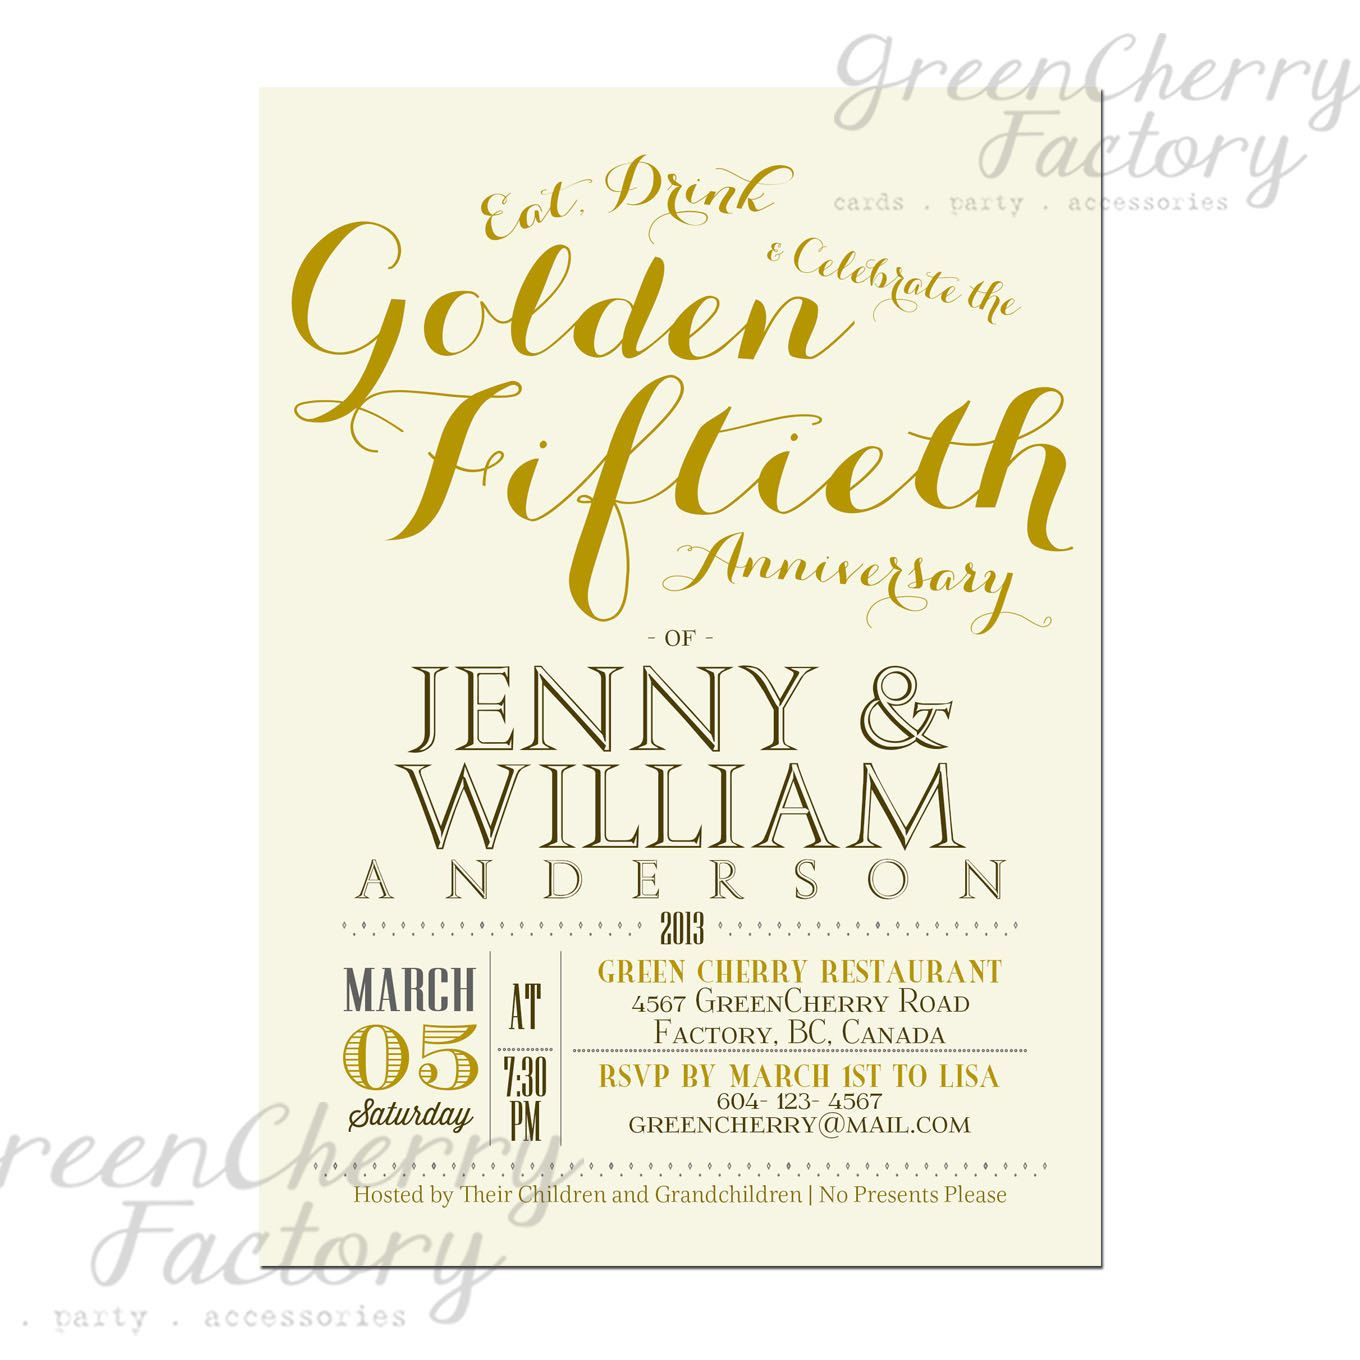 Golden 50th wedding anniversary invitation idea font idea golden 50th wedding anniversary invitation idea font idea stopboris